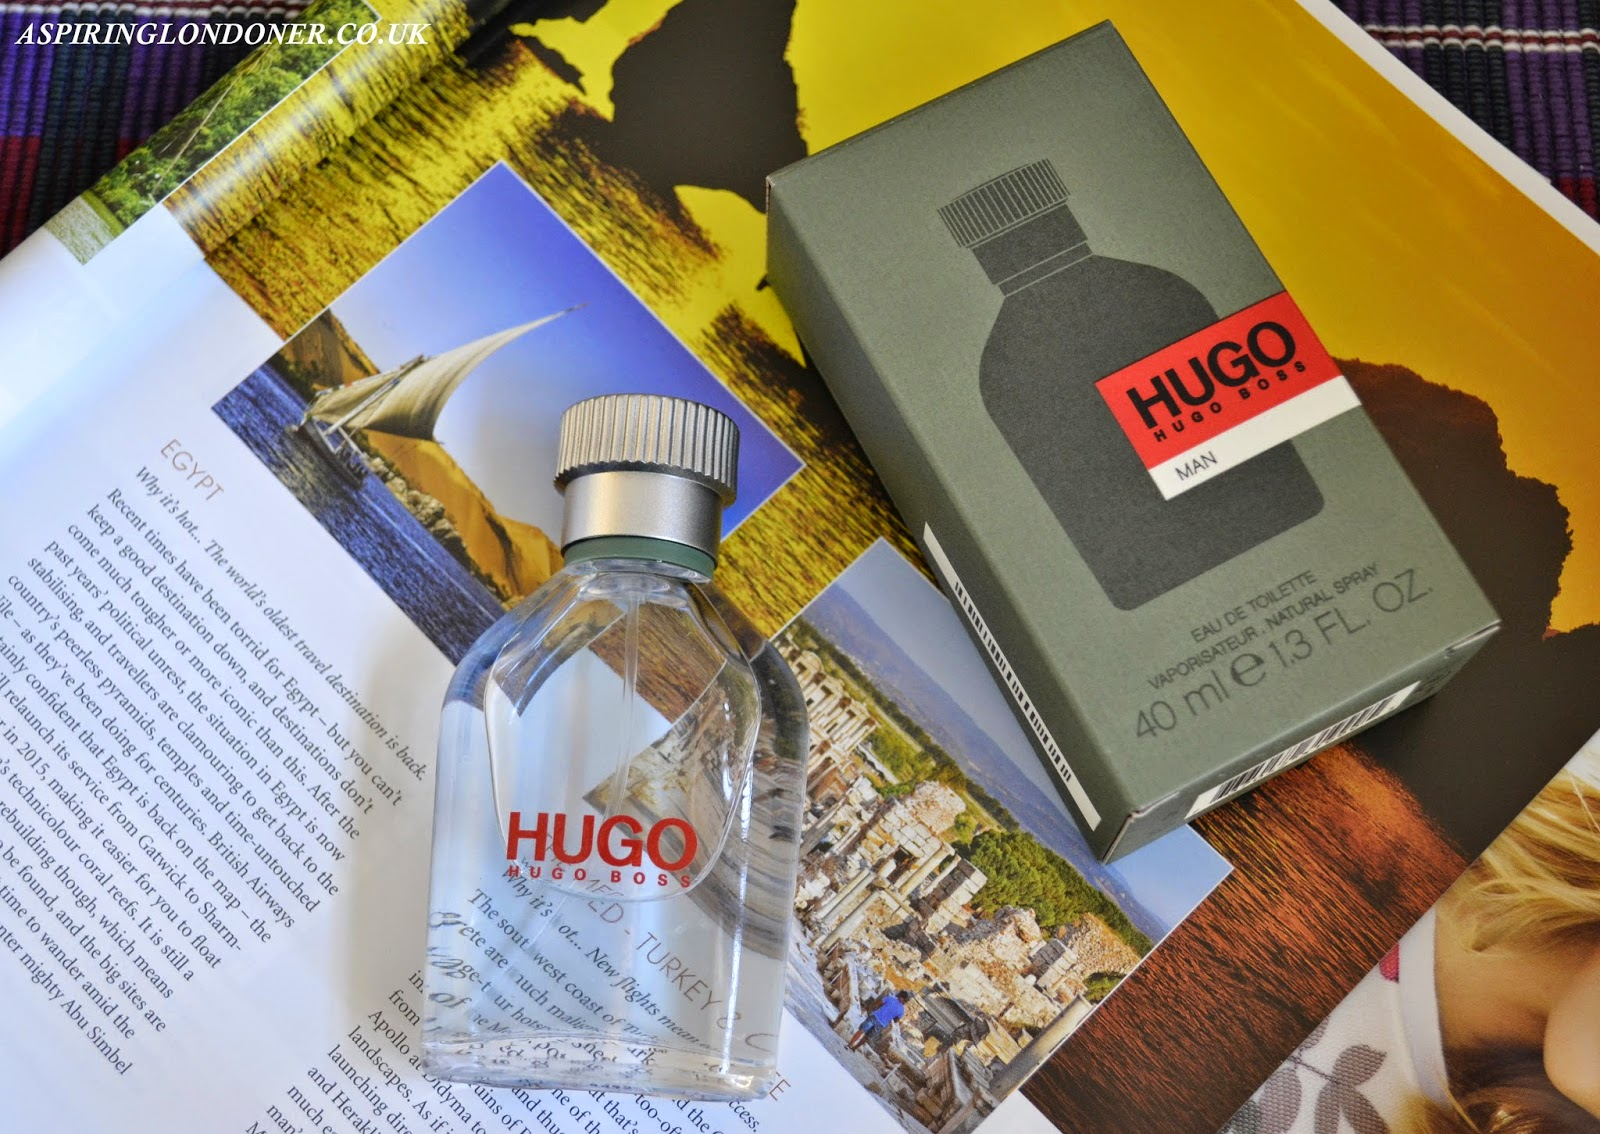 Valentine's Day Hugo Man EDT Perfume Review - Aspiring Londoner